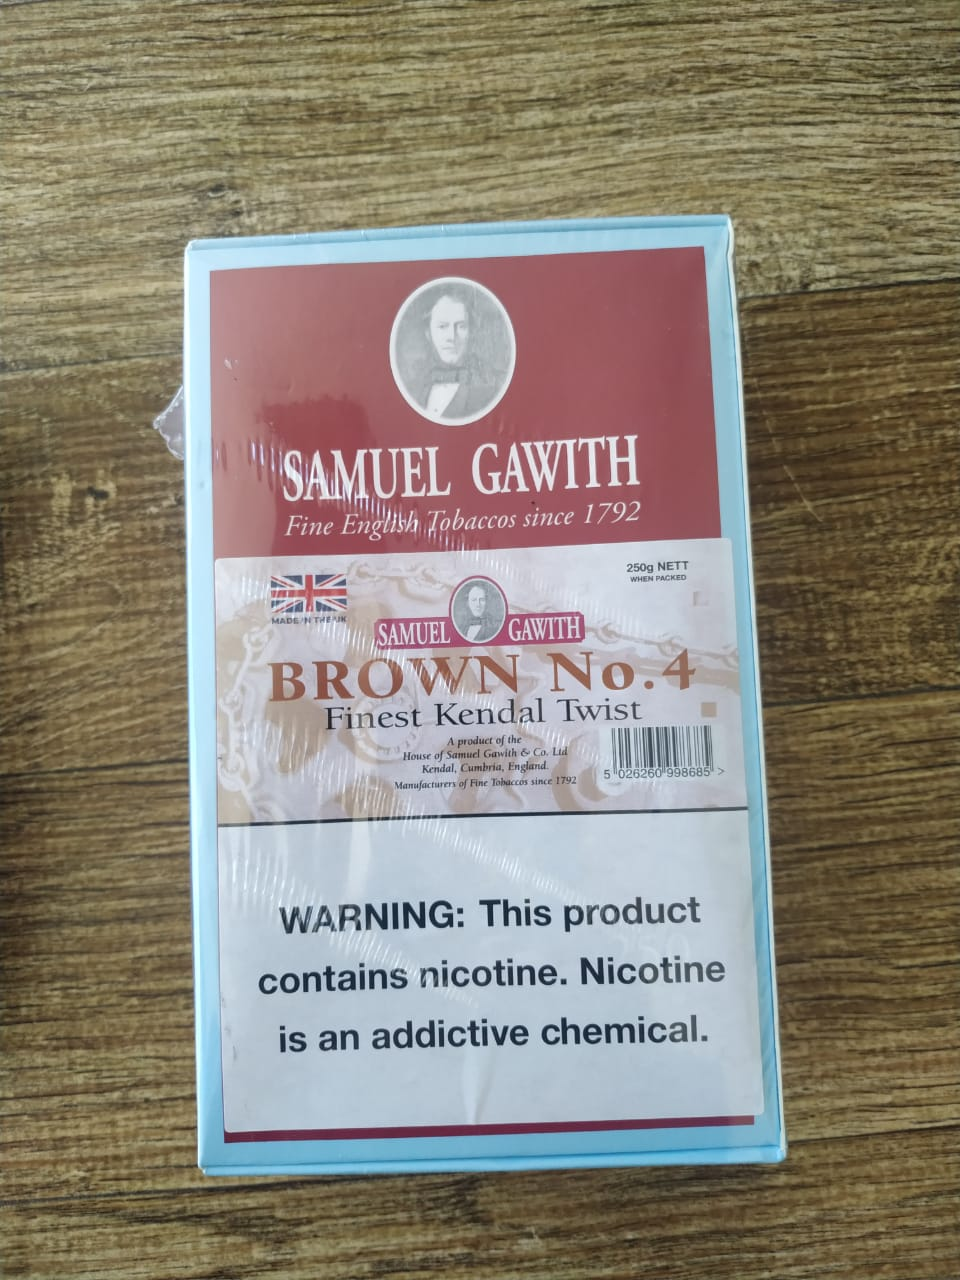 Samuel Gawith - Brown No. 4 - Caixa 250g